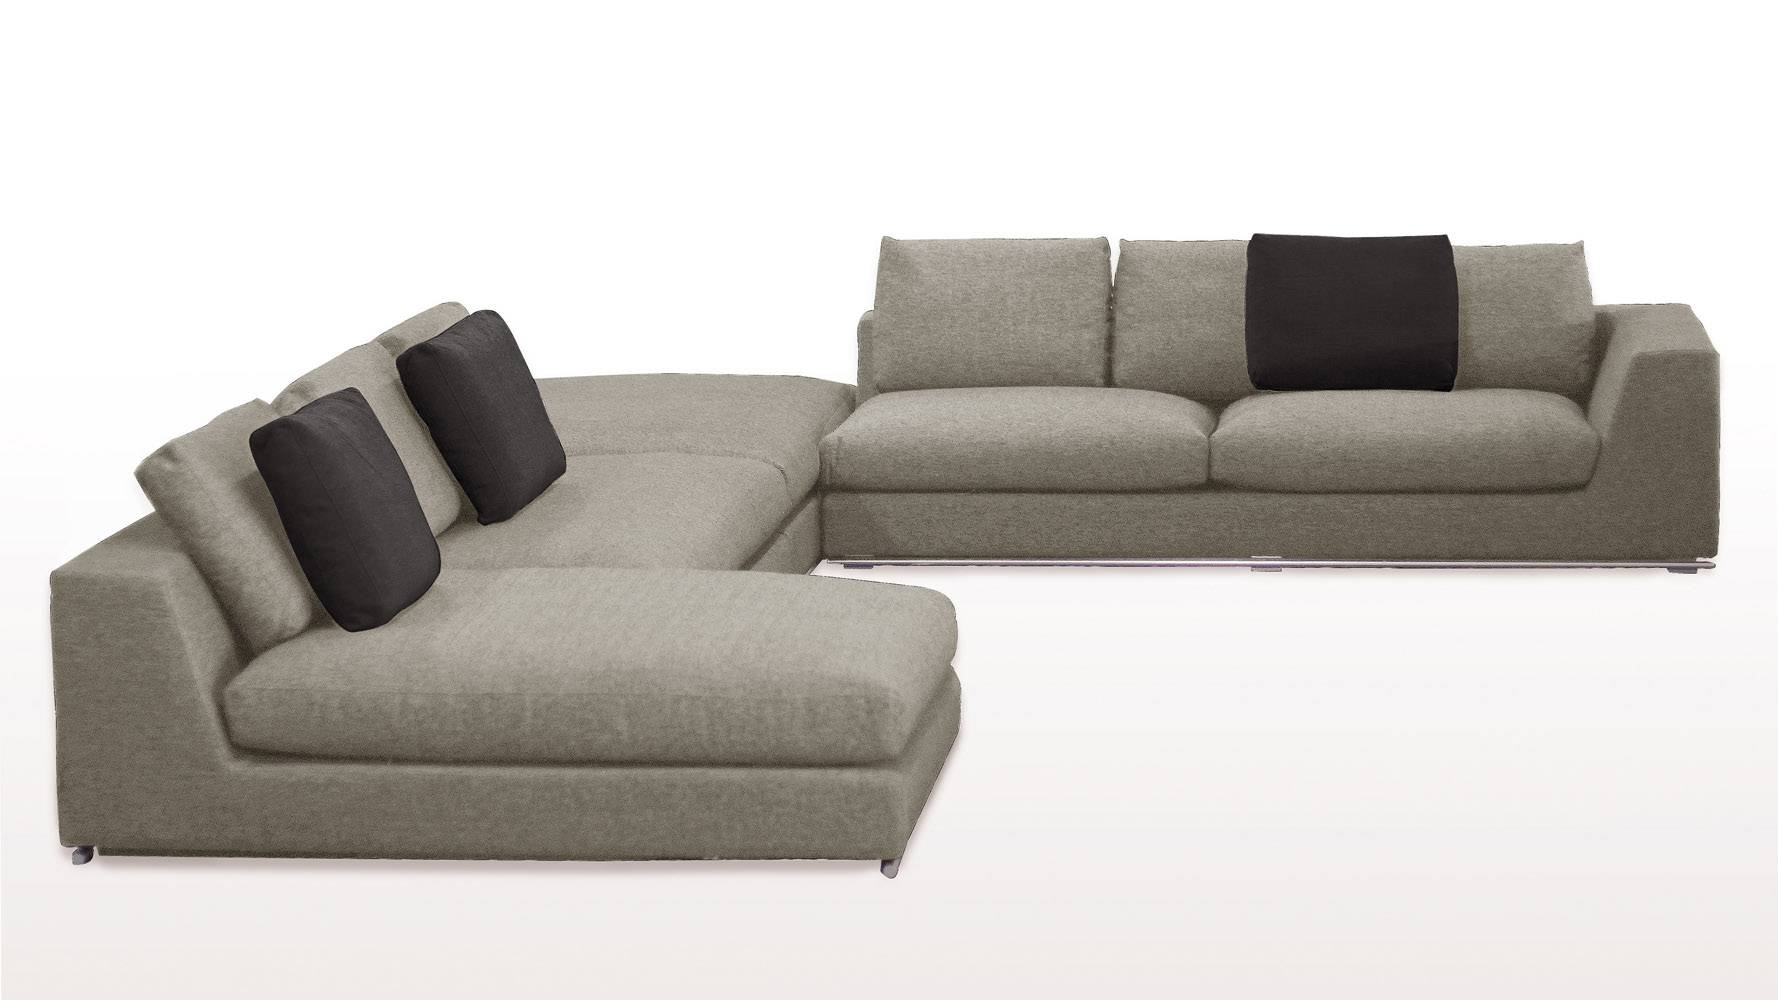 Comodo Sectional Sofa With Ottoman - Grey | Zuri Furniture throughout Goose Down Sectional Sofa (Image 2 of 25)